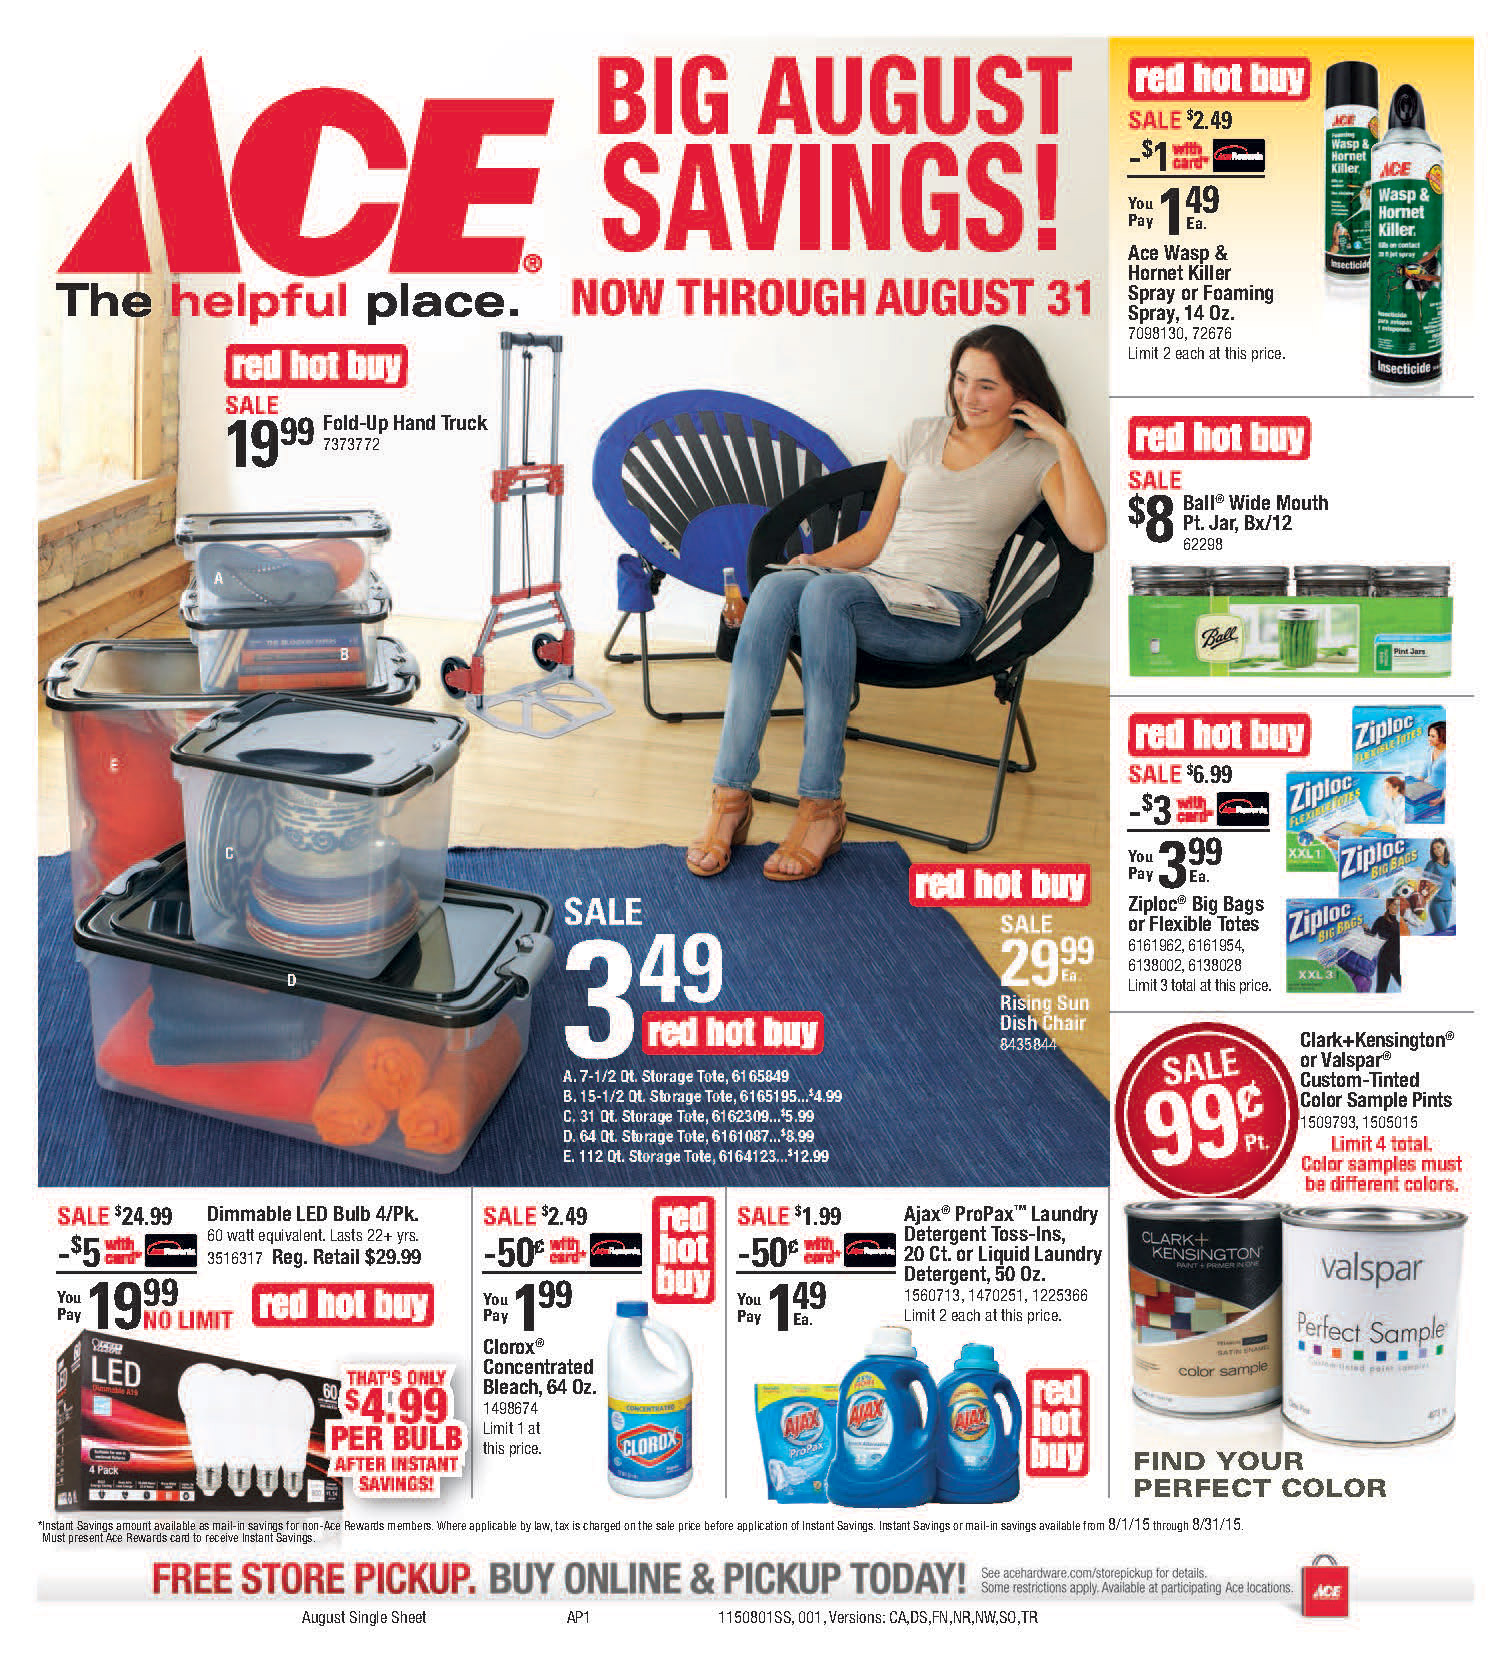 August-Red-Hot-Buys_Page_1